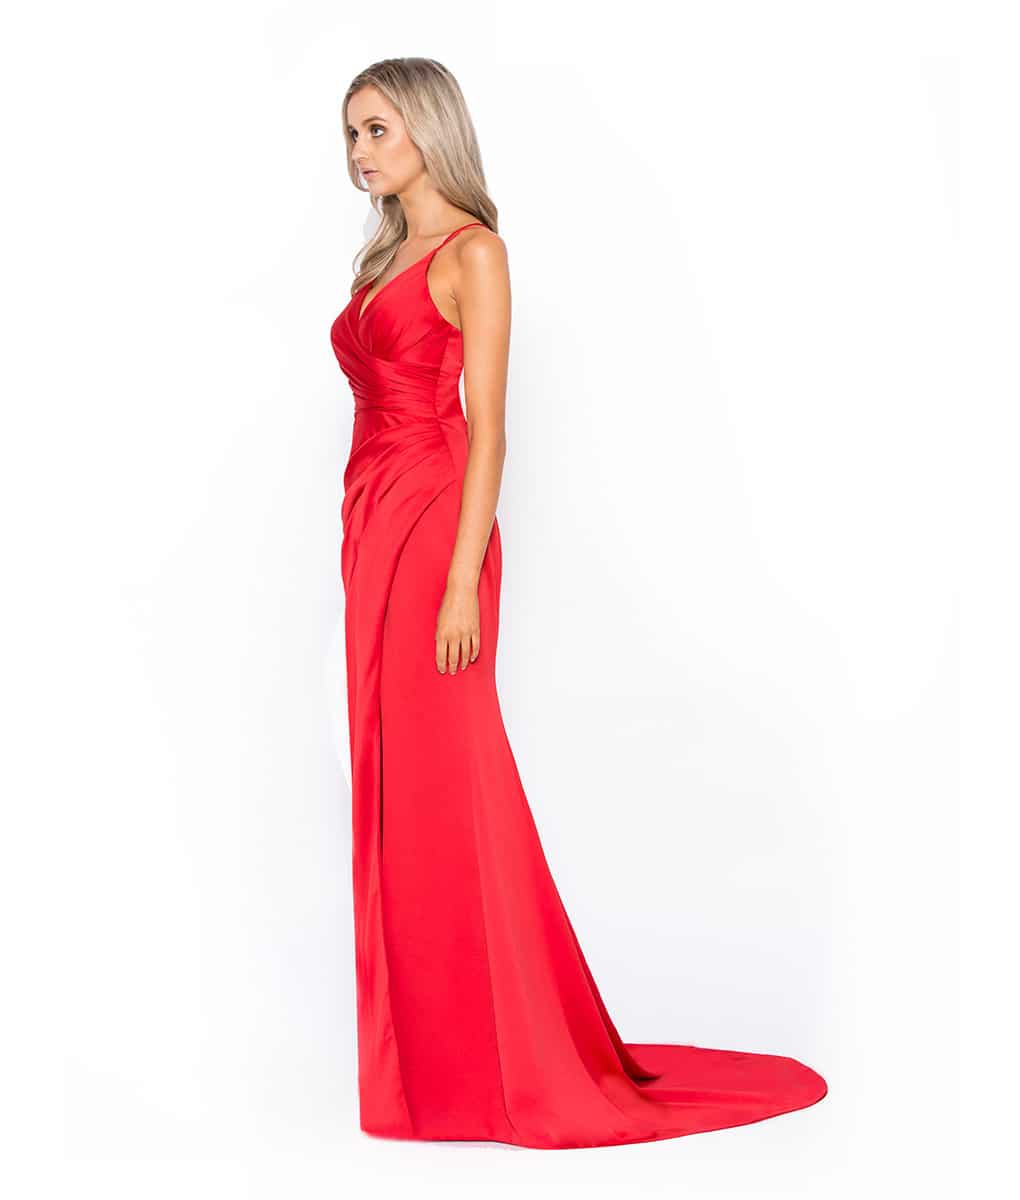 Alila-Red-Satin-Gown-Bariano